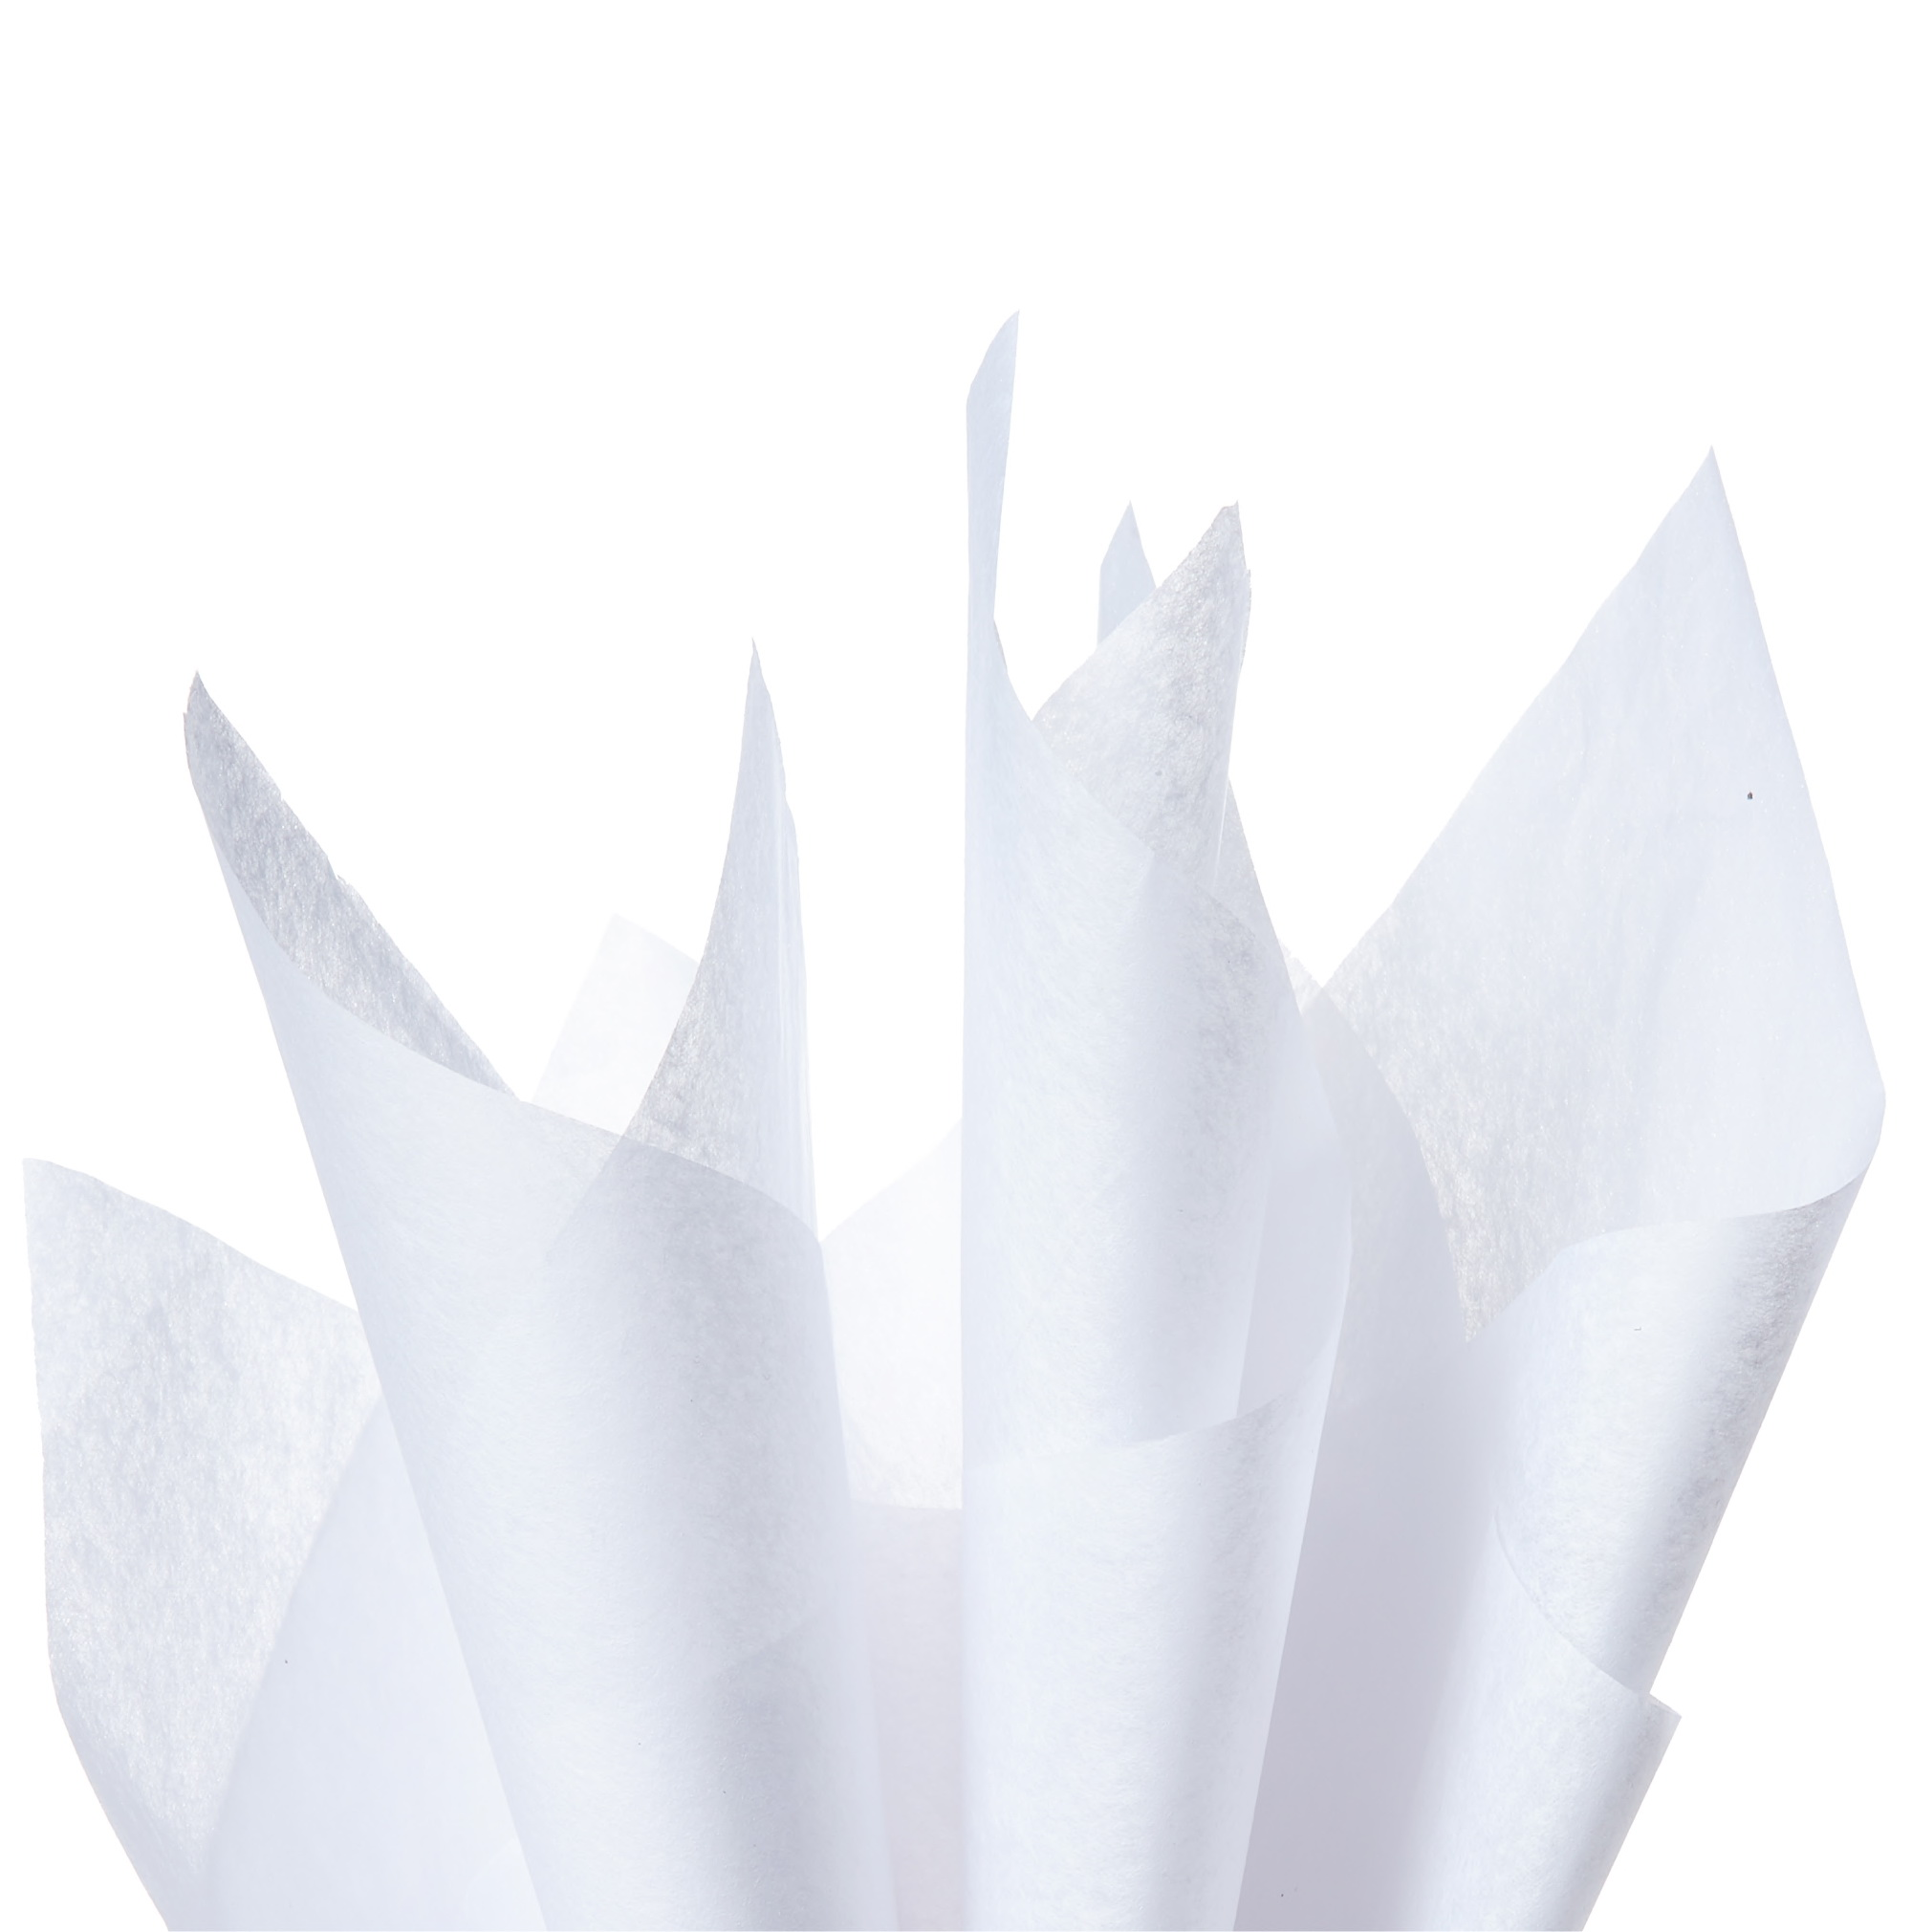 480 Sheets Acid Free Tissue Paper 660x400mm 18gsm White